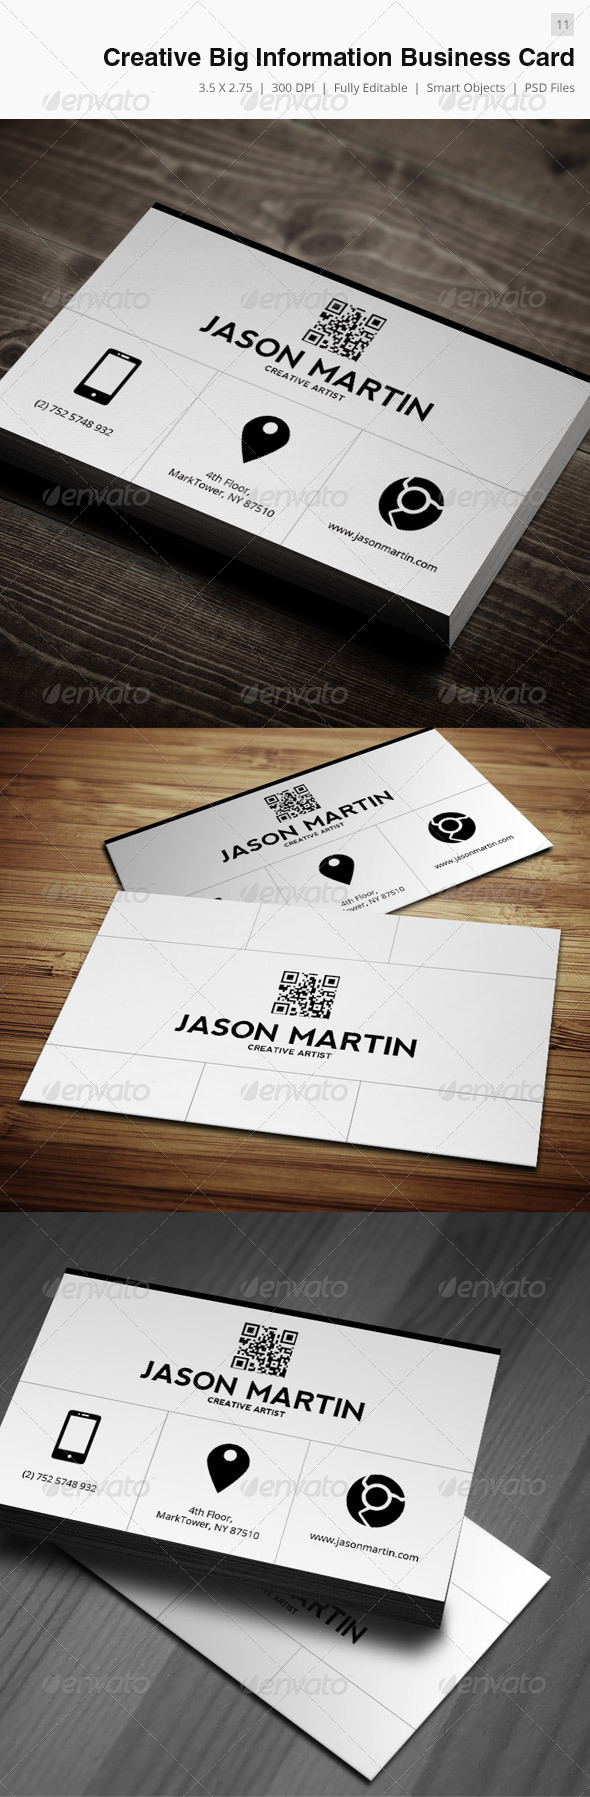 Big Information Business Card 11 Cool Business Cards Business Cards Print Templates